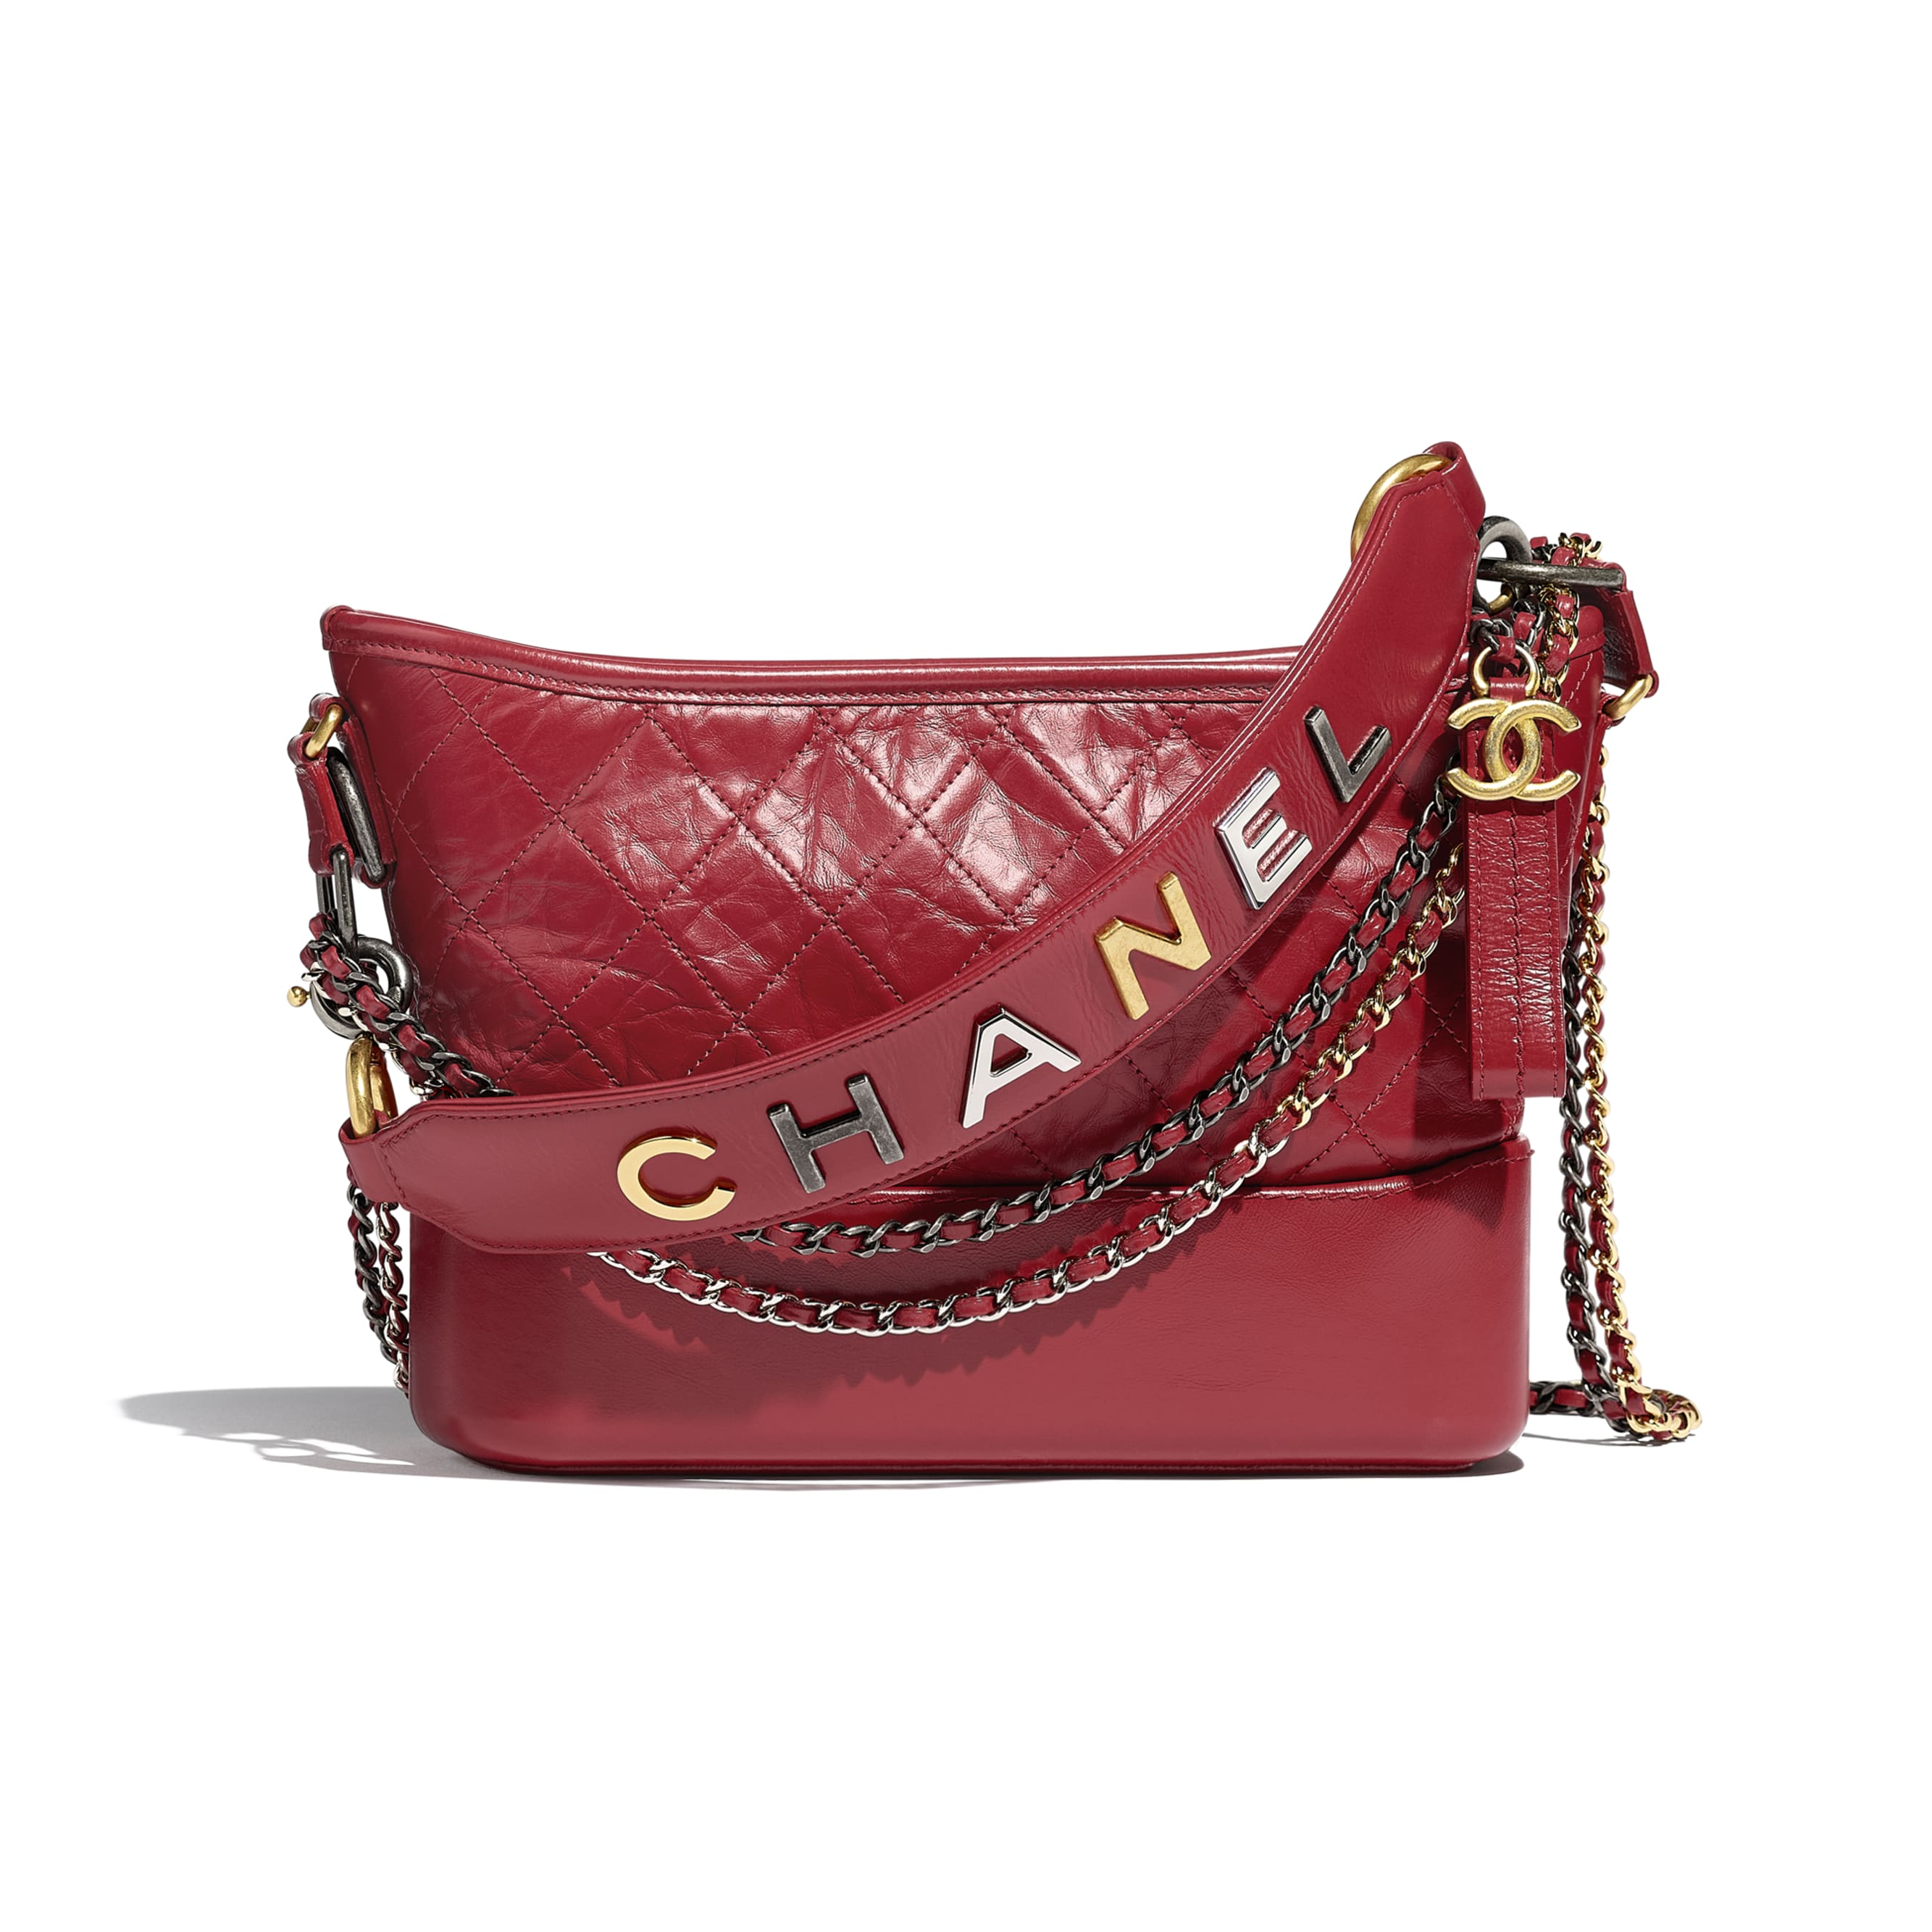 CHANEL'S GABRIELLE Hobo Bag - Red - Aged Calfskin, Smooth Calfskin, Gold-Tone & Silver-Tone Metal - CHANEL - Default view - see standard sized version